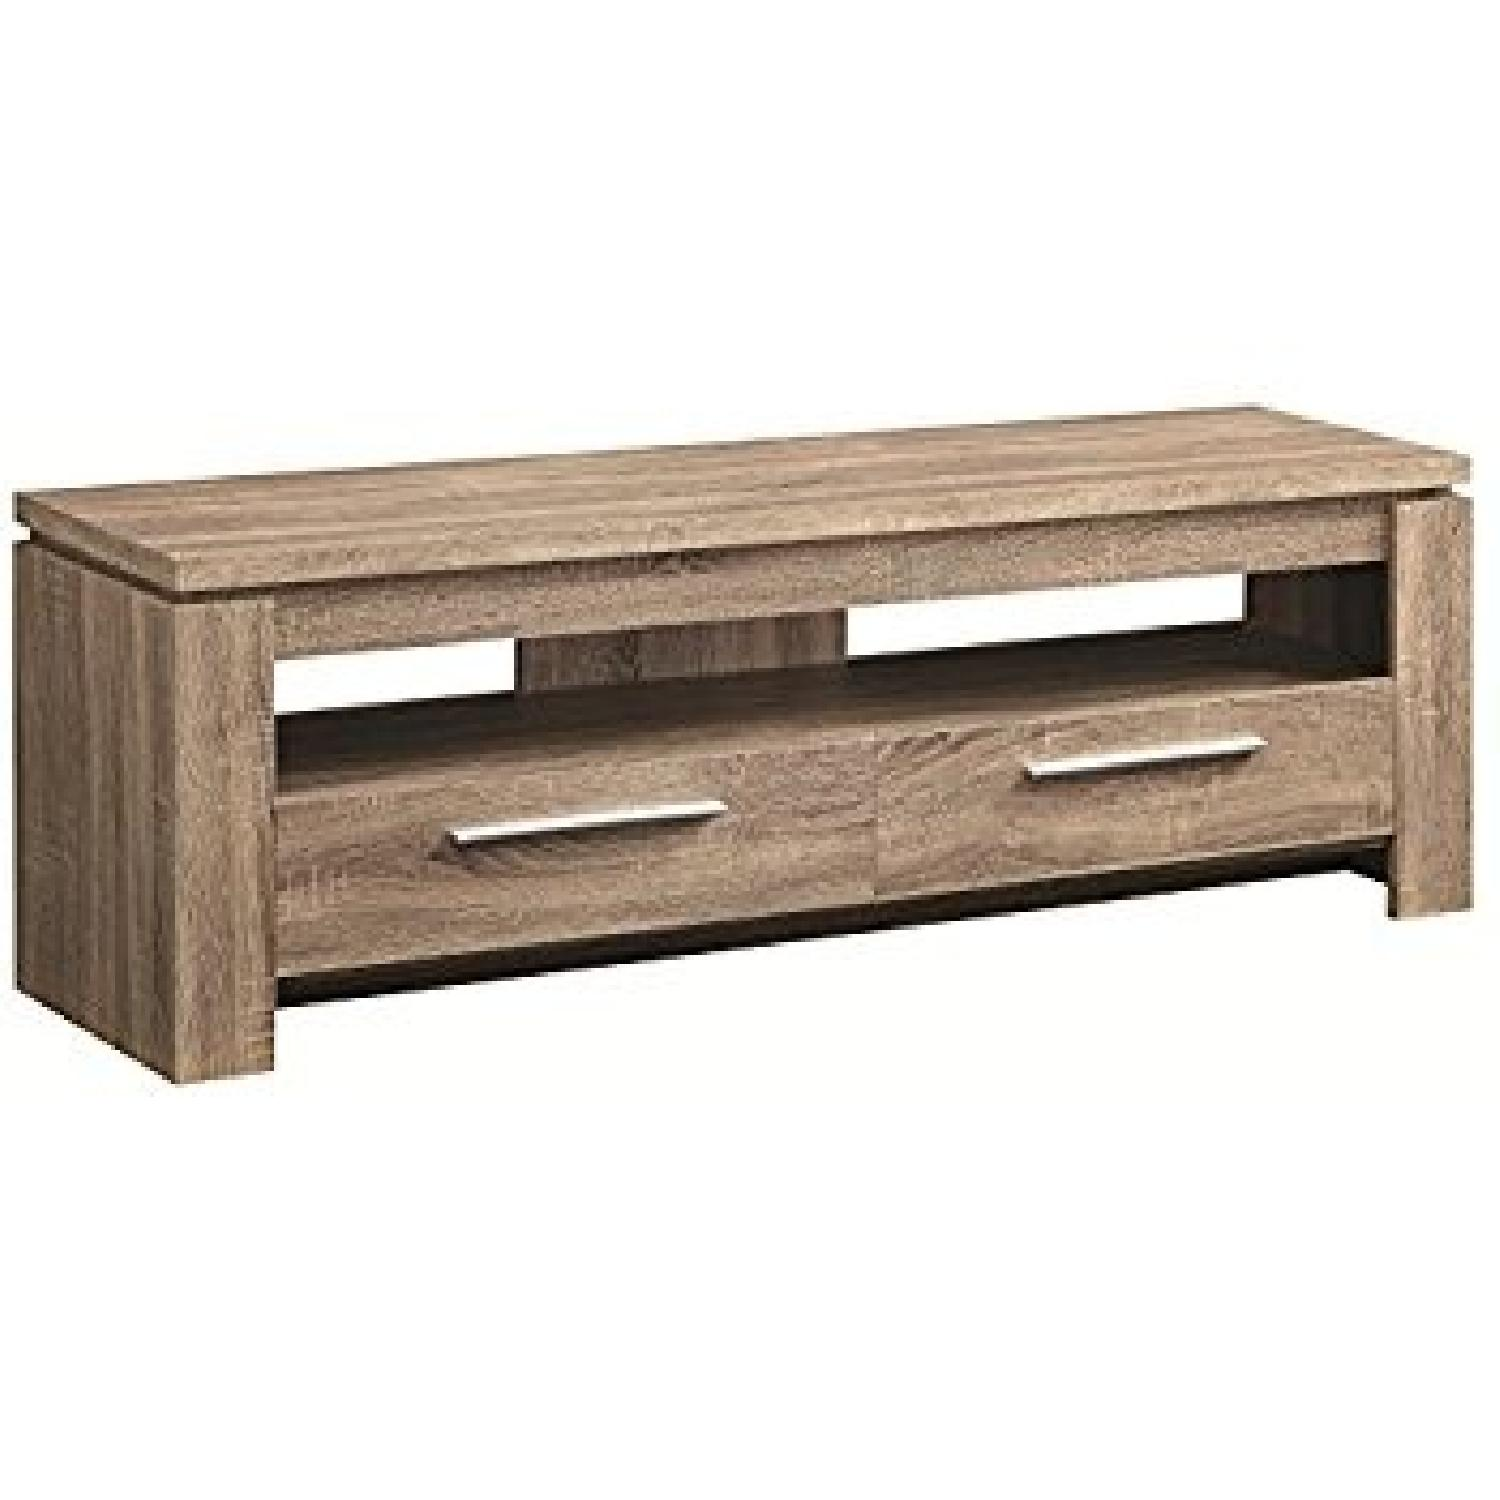 Contemporary Rustic TV Stand in Weathered Wood Finish